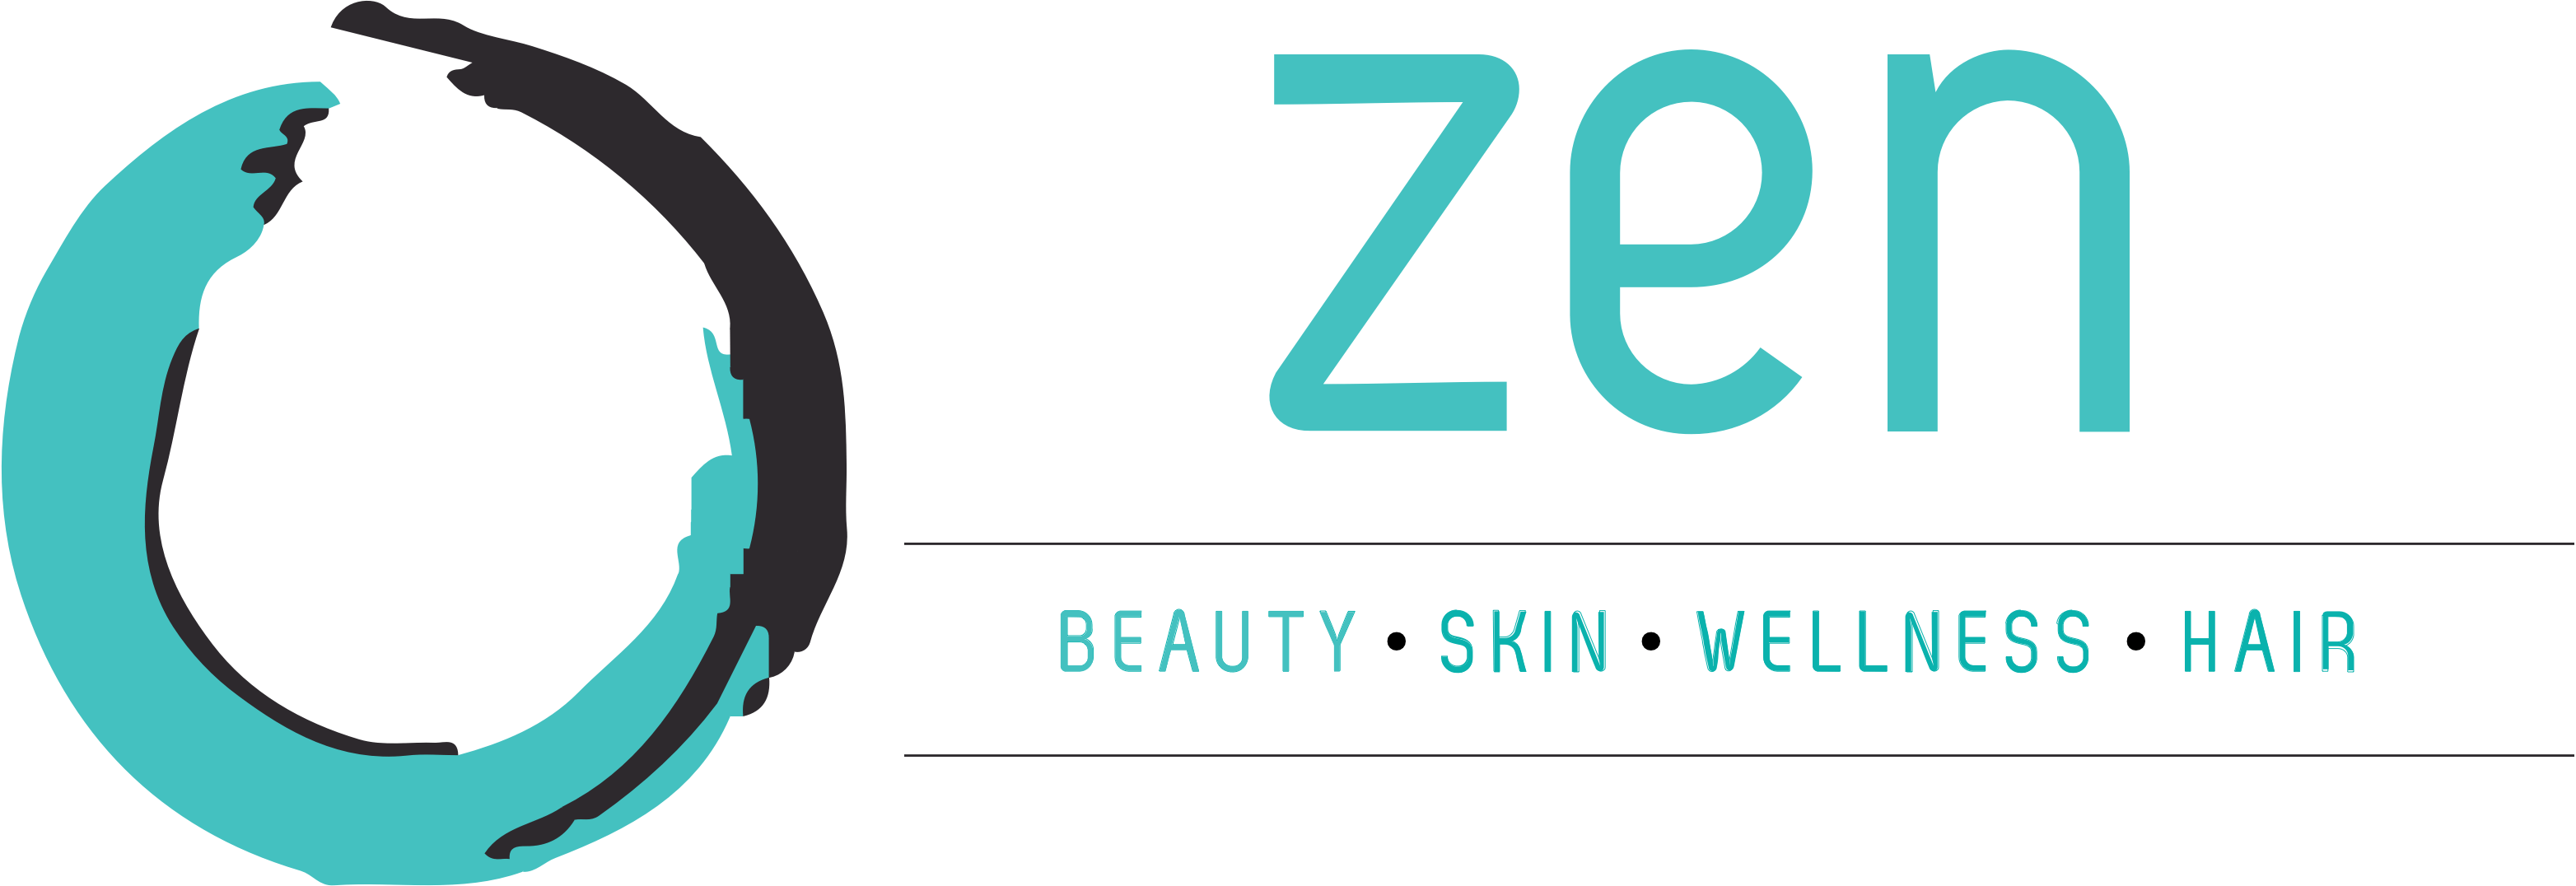 Zen Day Spa brand logo